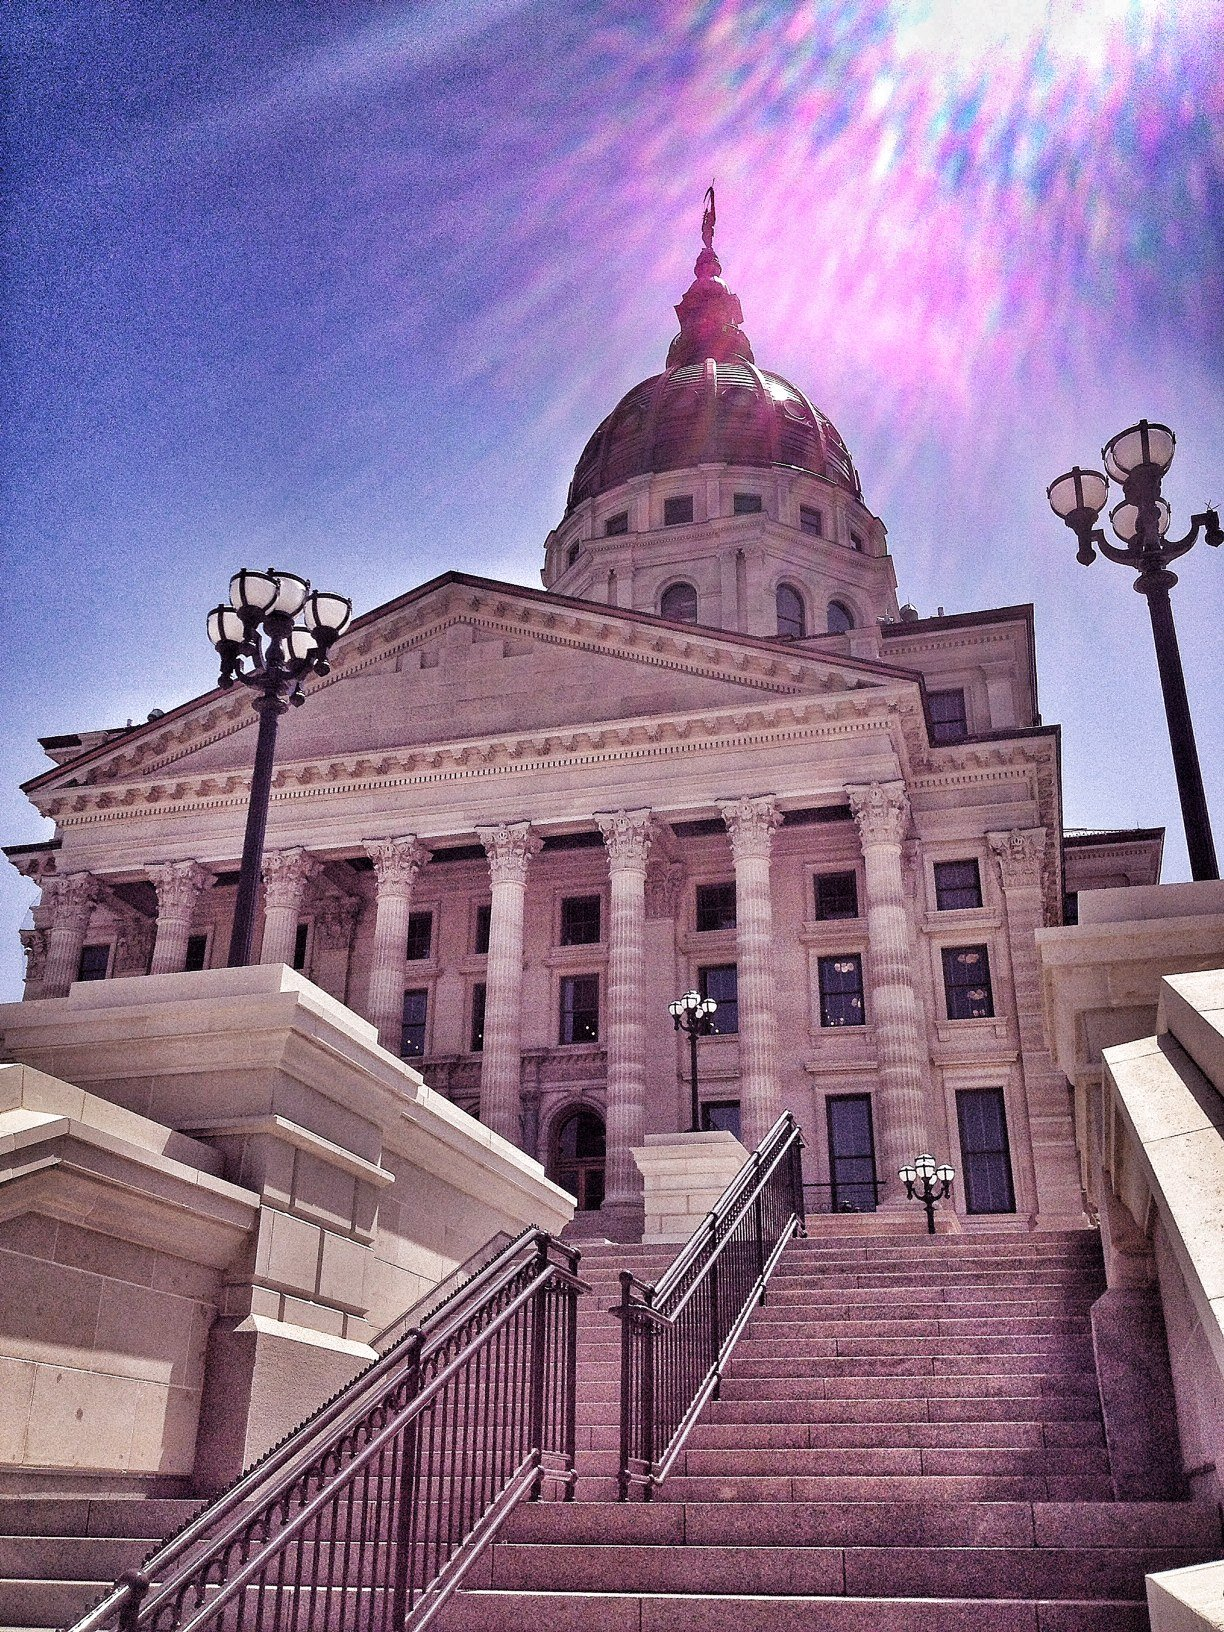 Steps leading up to the Kansas Statehouse. (Photo by J. Schafer)